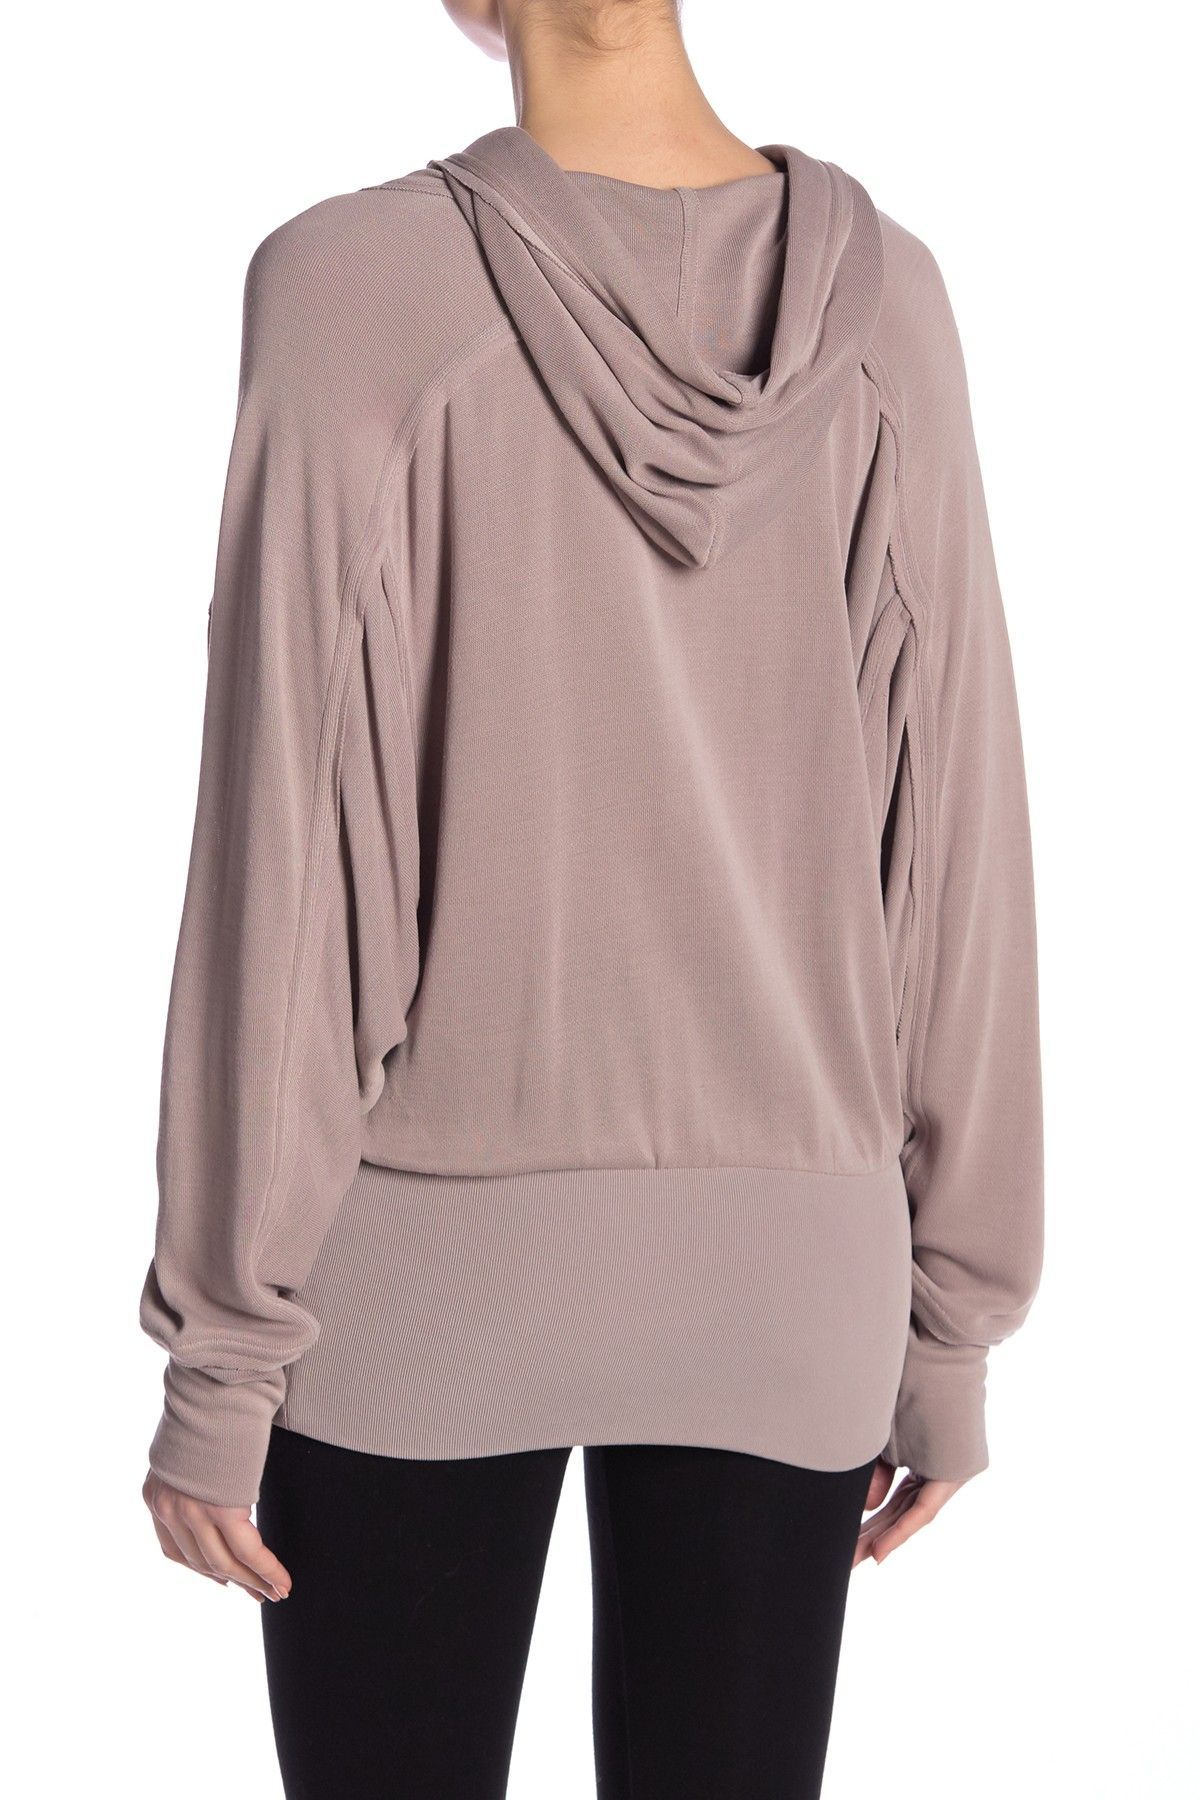 Free People Movement   Ready Go Hoodie   Nordstrom Rack #nordstromrack Ready Go Hoodie by Free People Movement on @nordstrom_rack #nordstromrack